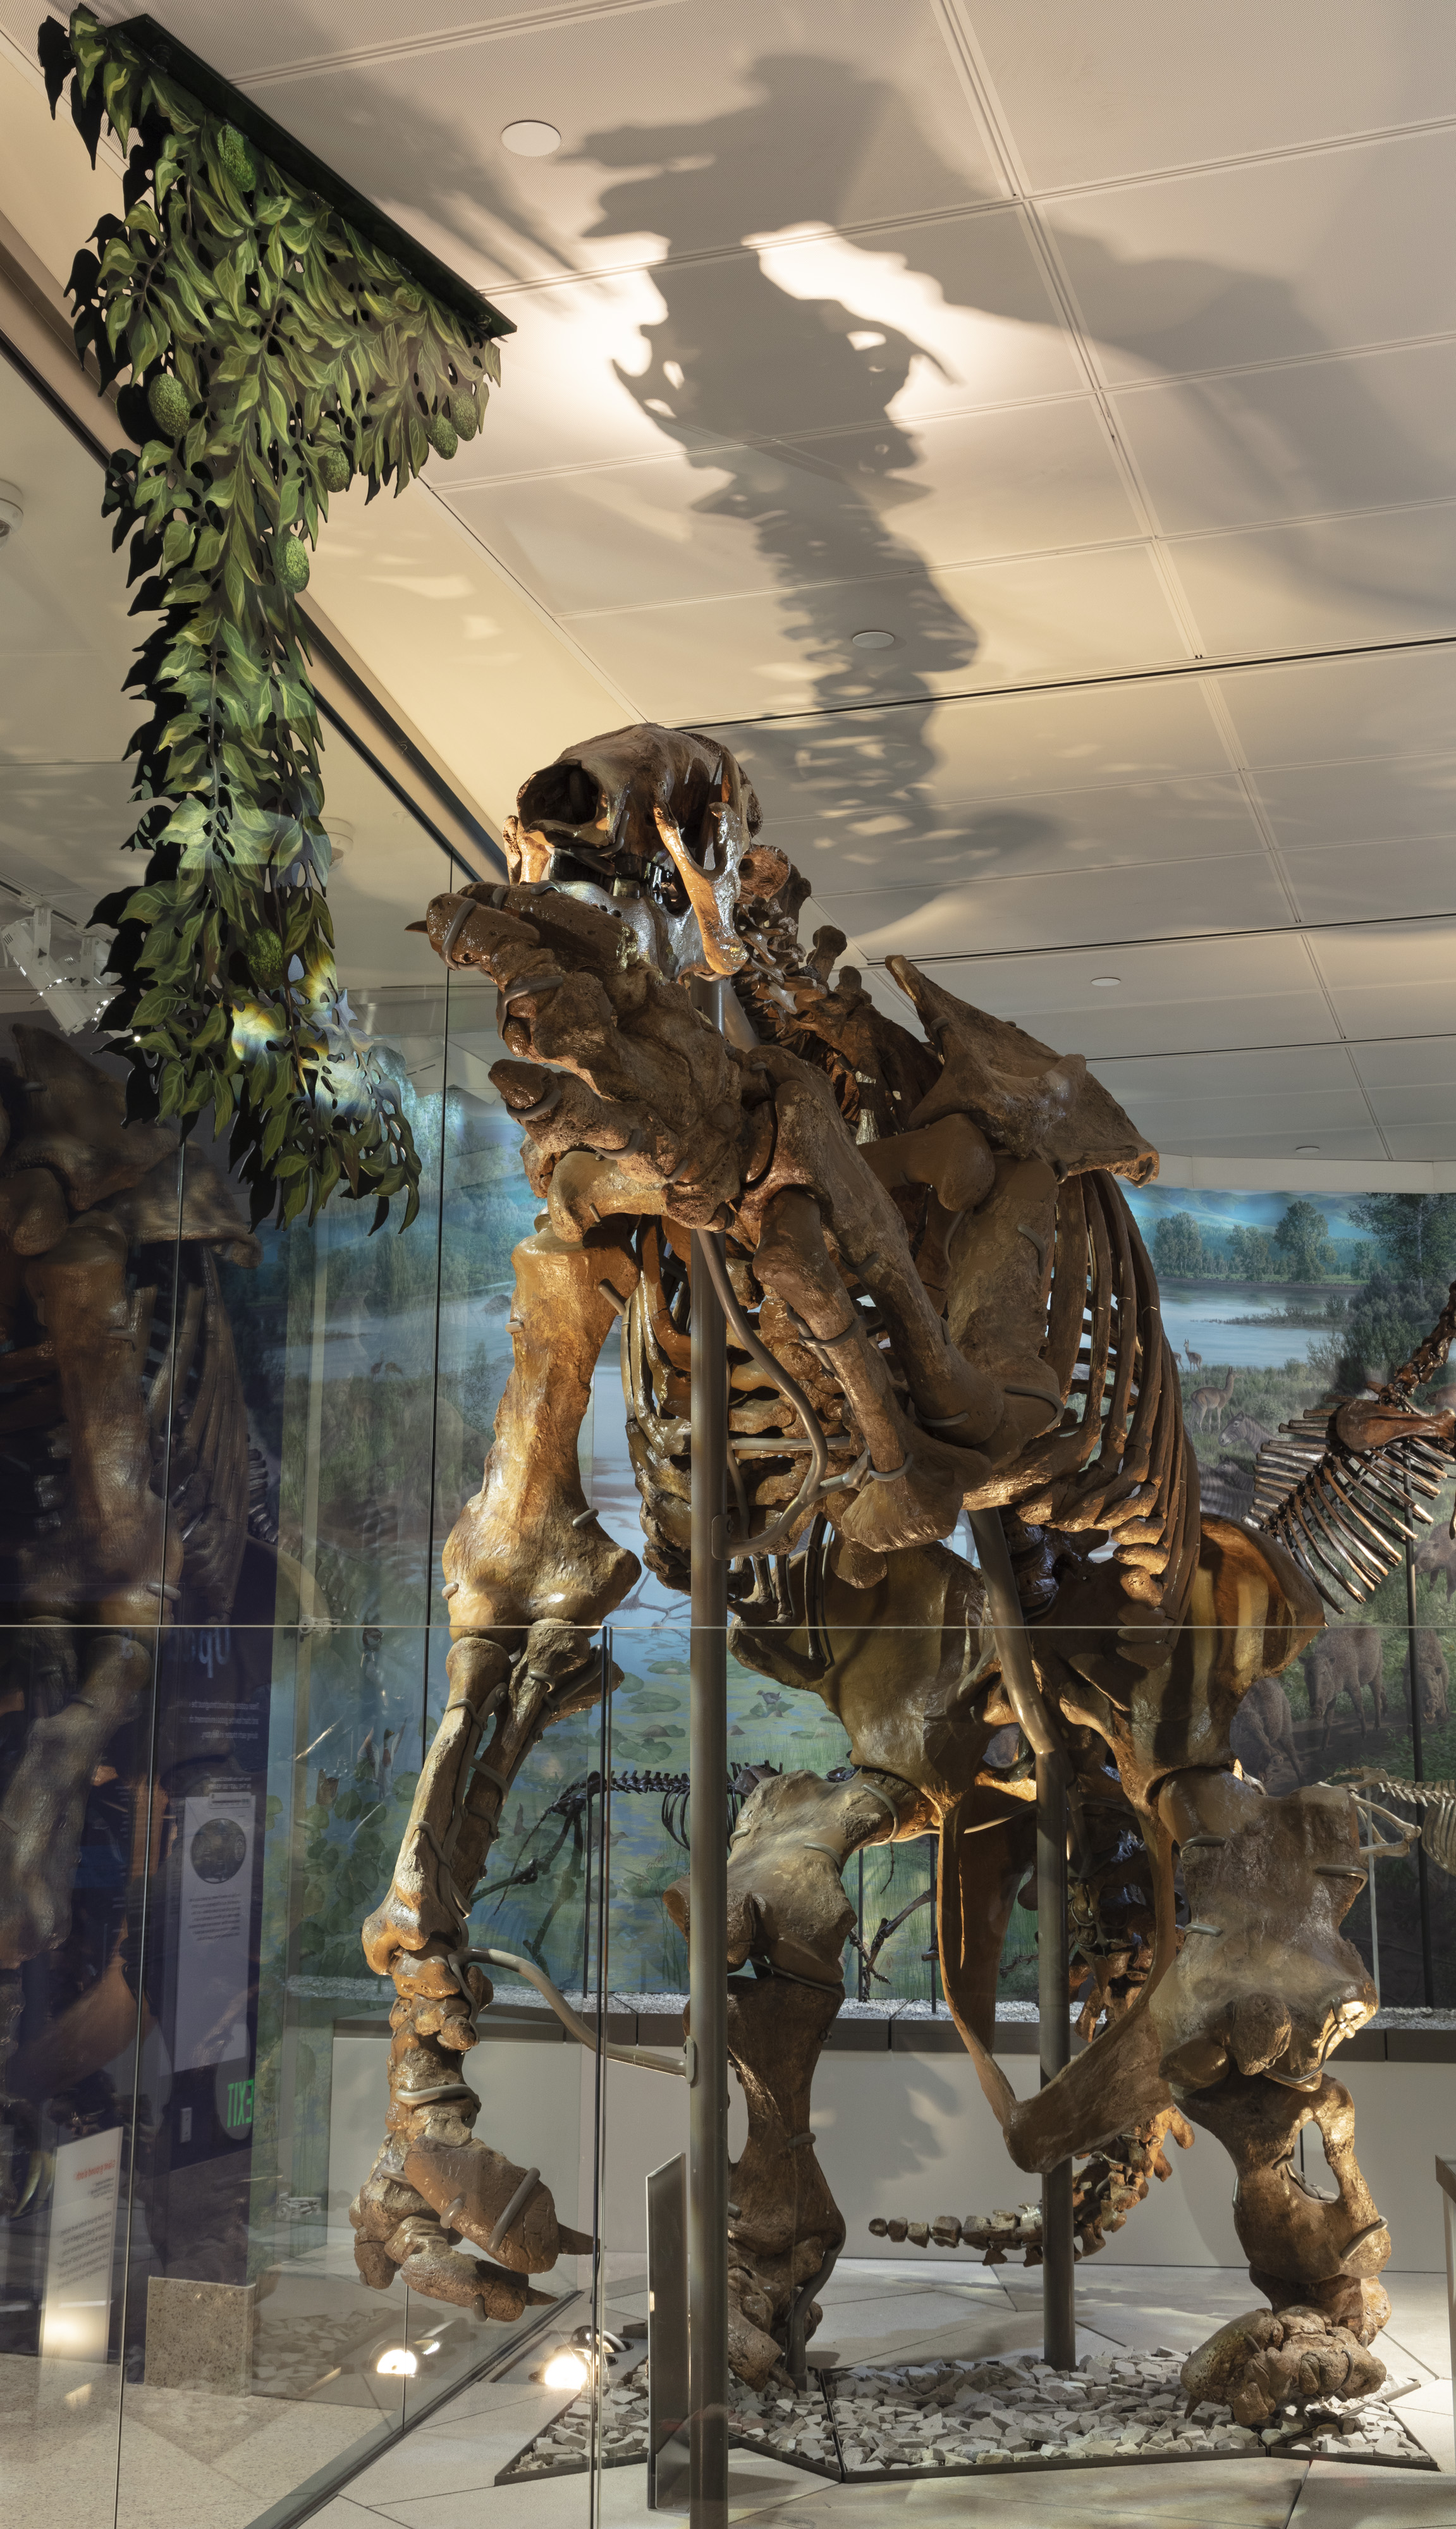 Giant Sloth skeleton in display case